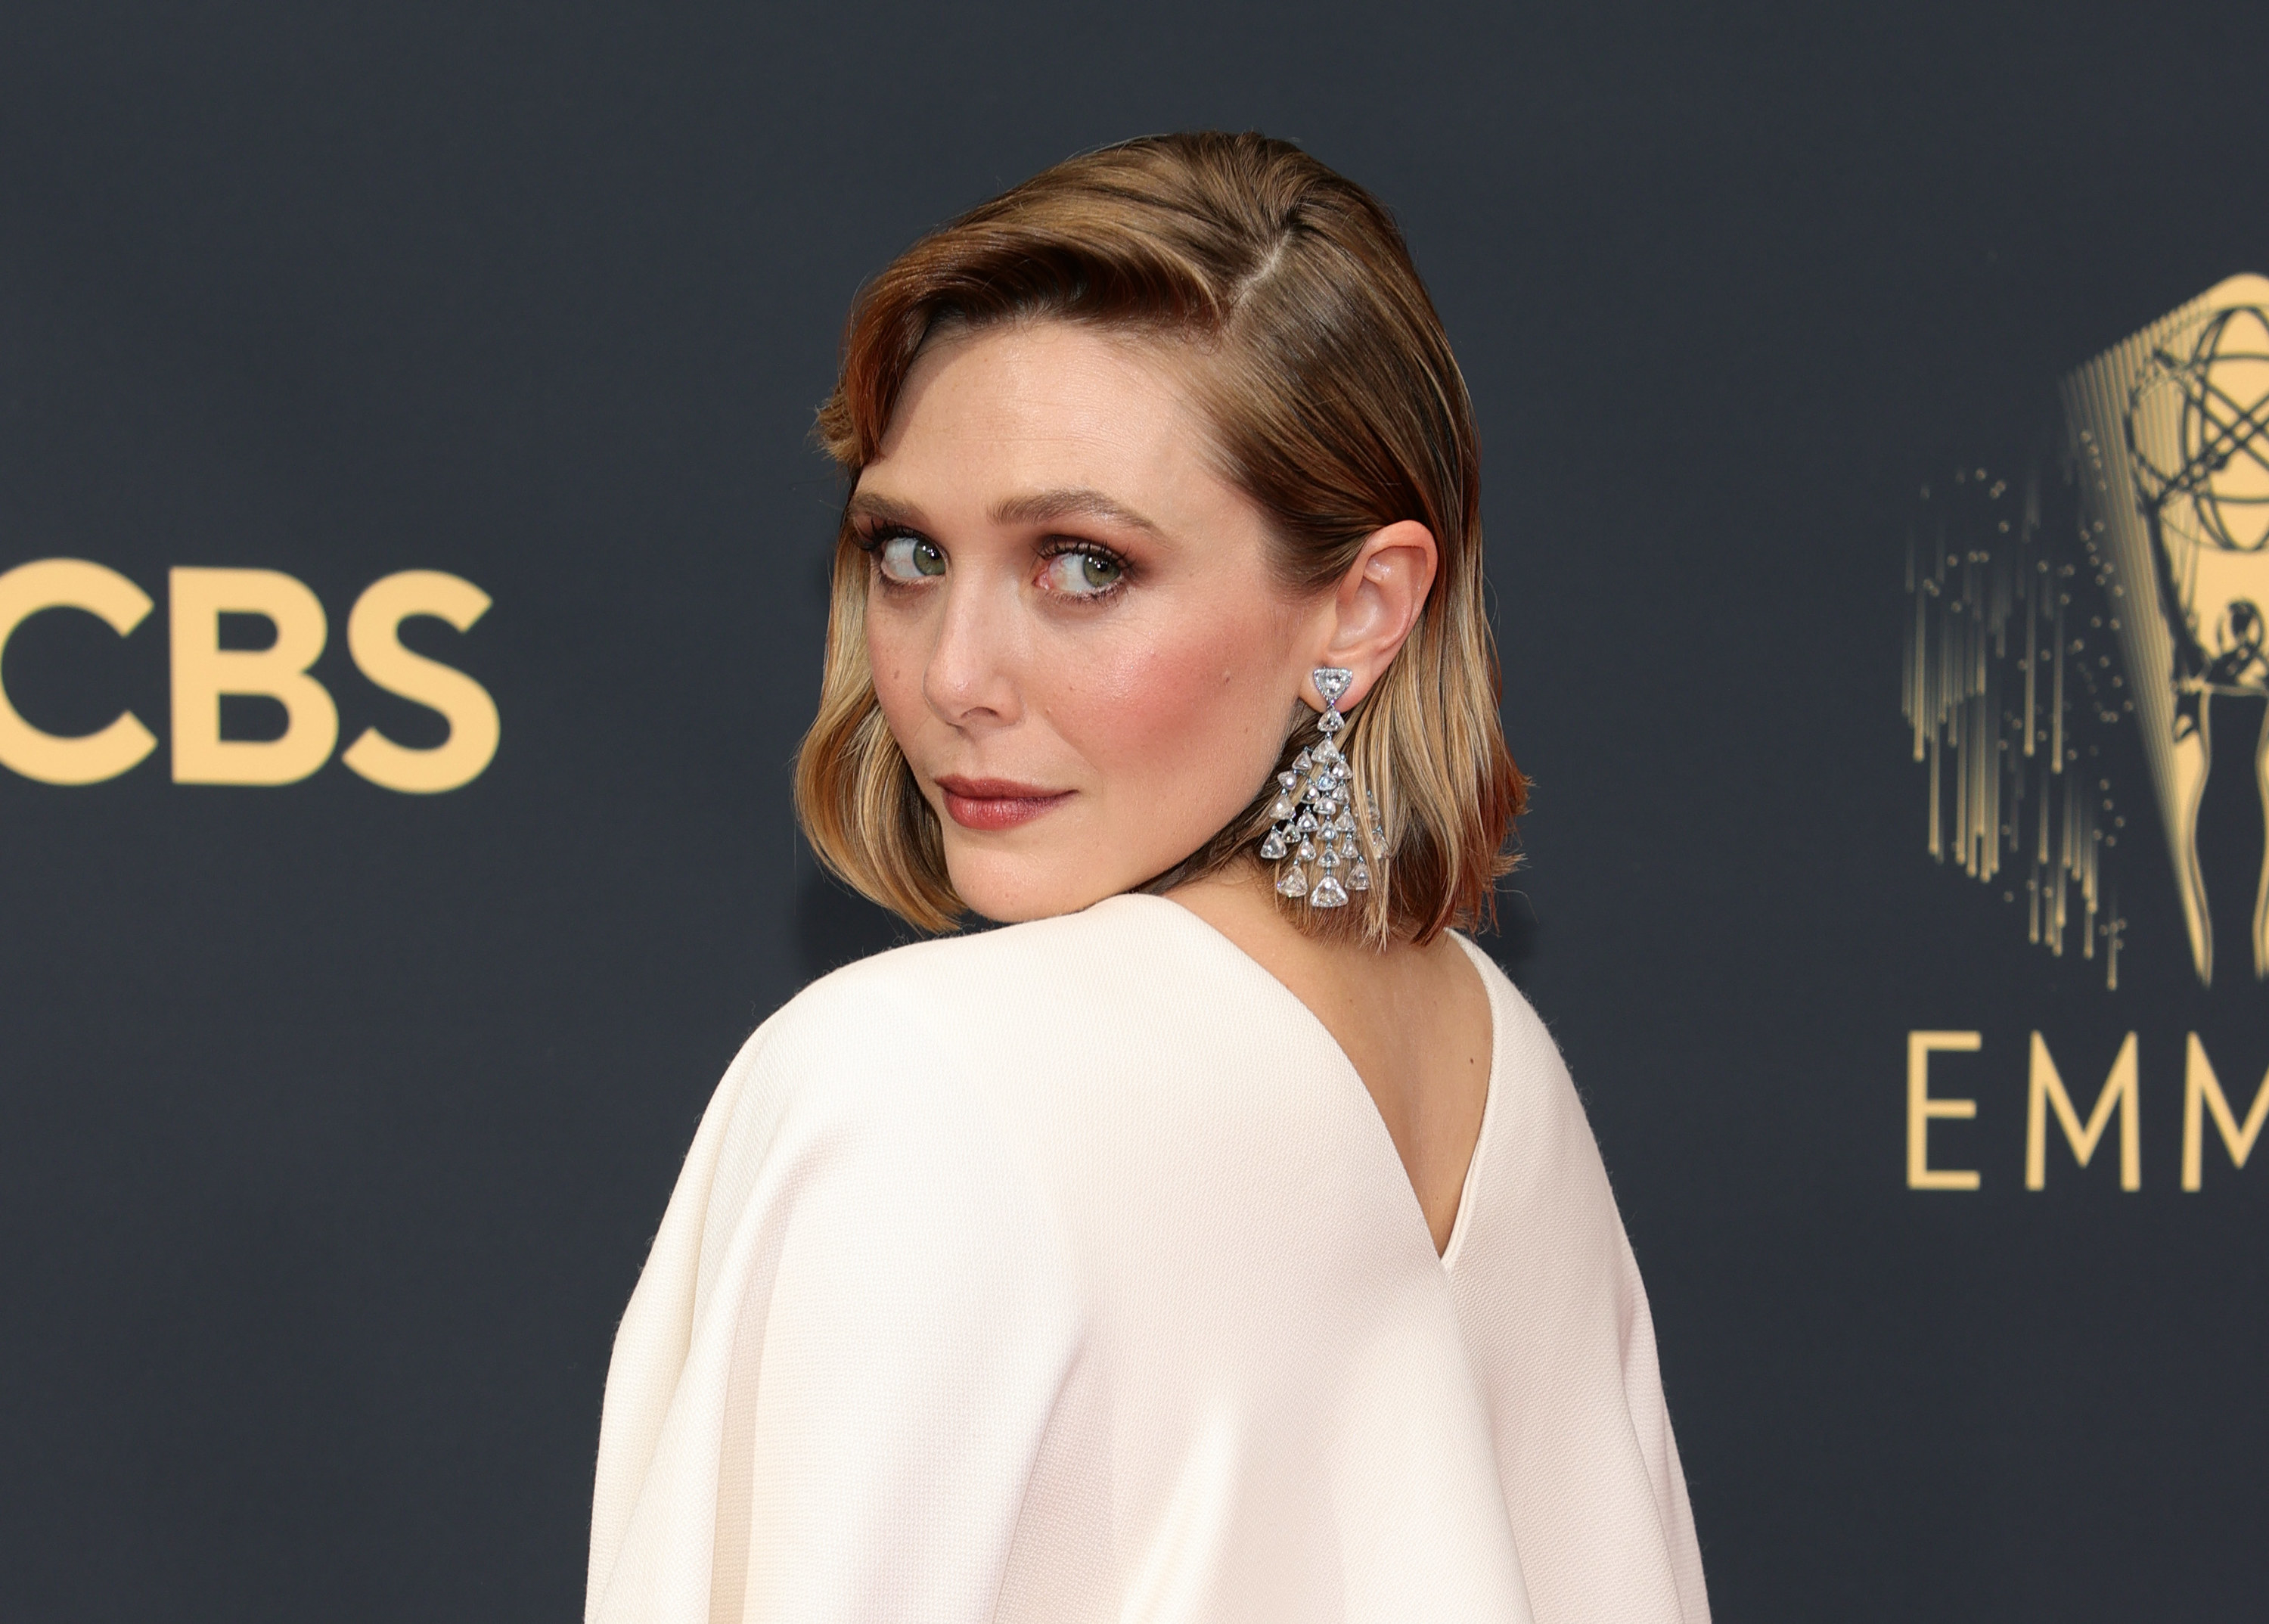 Elizabeth Olsen in a white gown with long diamond earrings at the 2021 Emmys